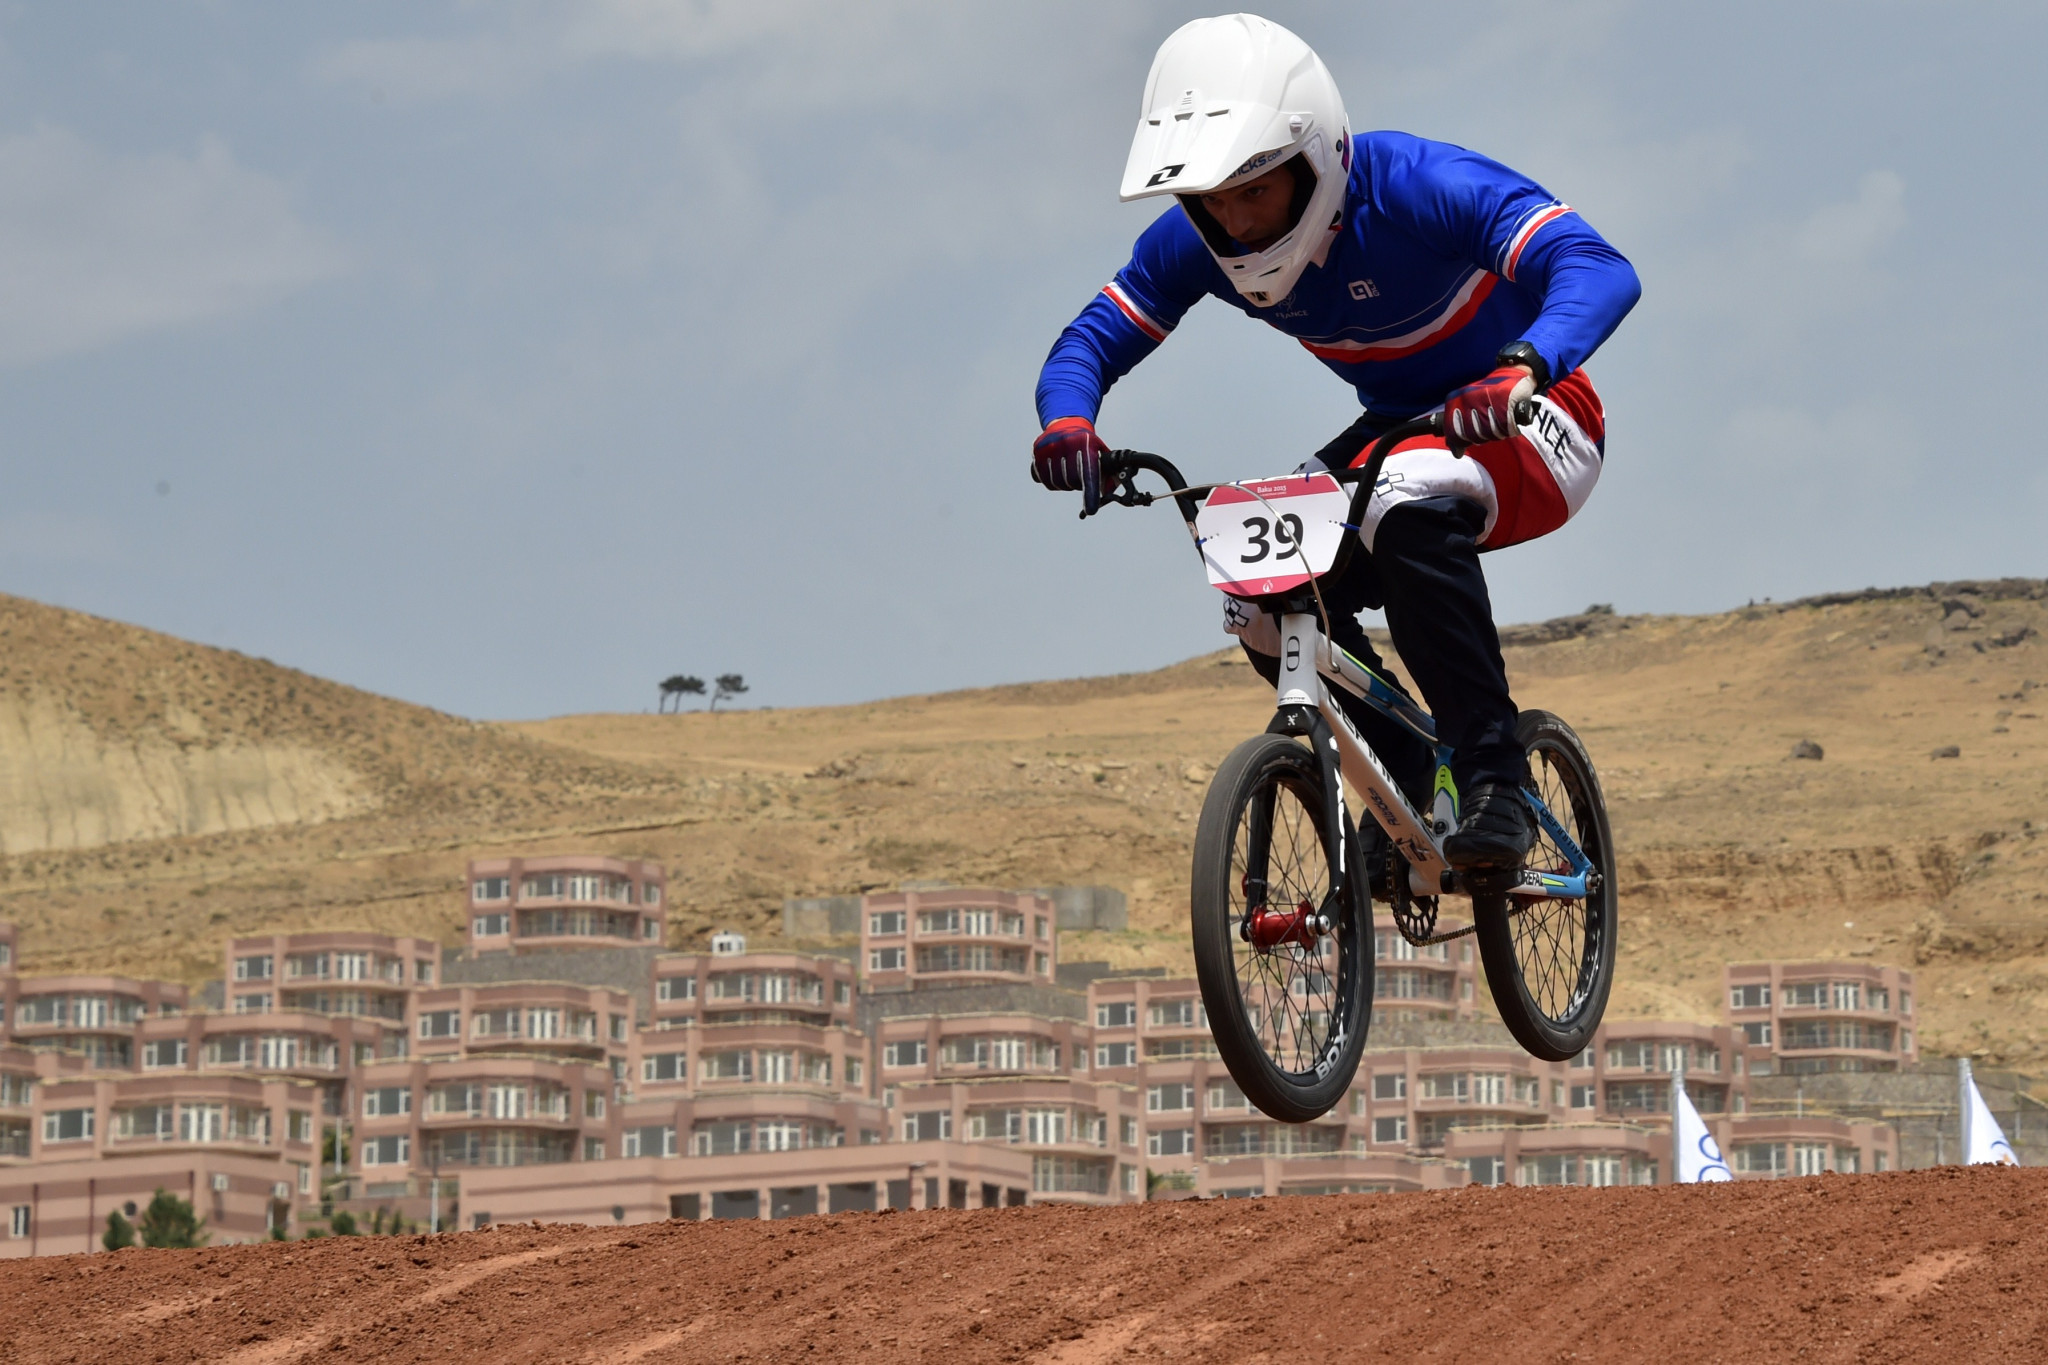 France and Netherlands to battle it our for BMX supremacy at Glasgow 2018 European Championships